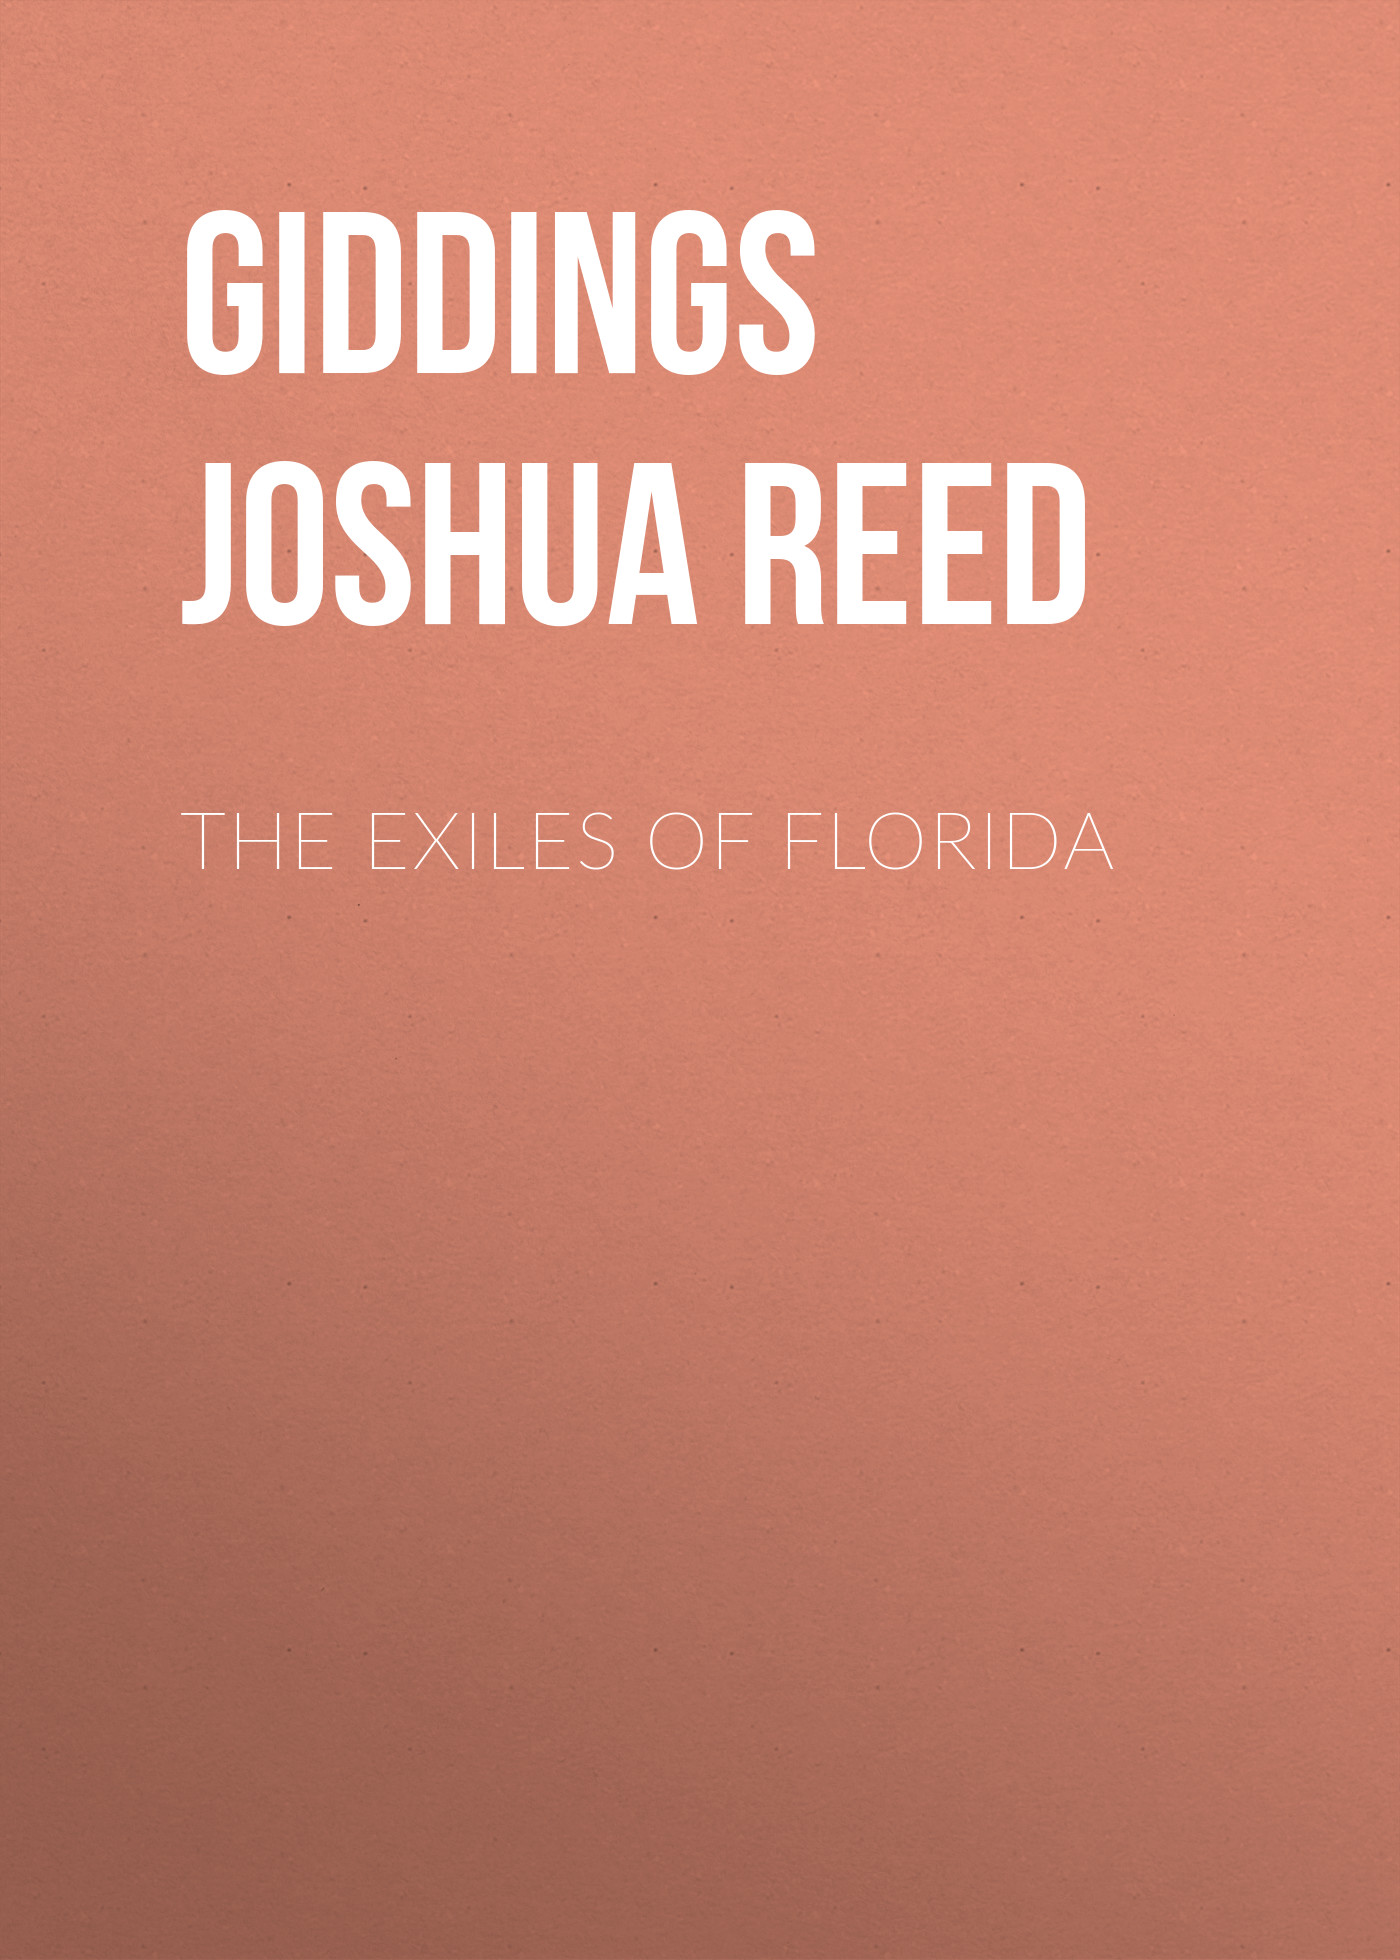 Giddings Joshua Reed The Exiles of Florida